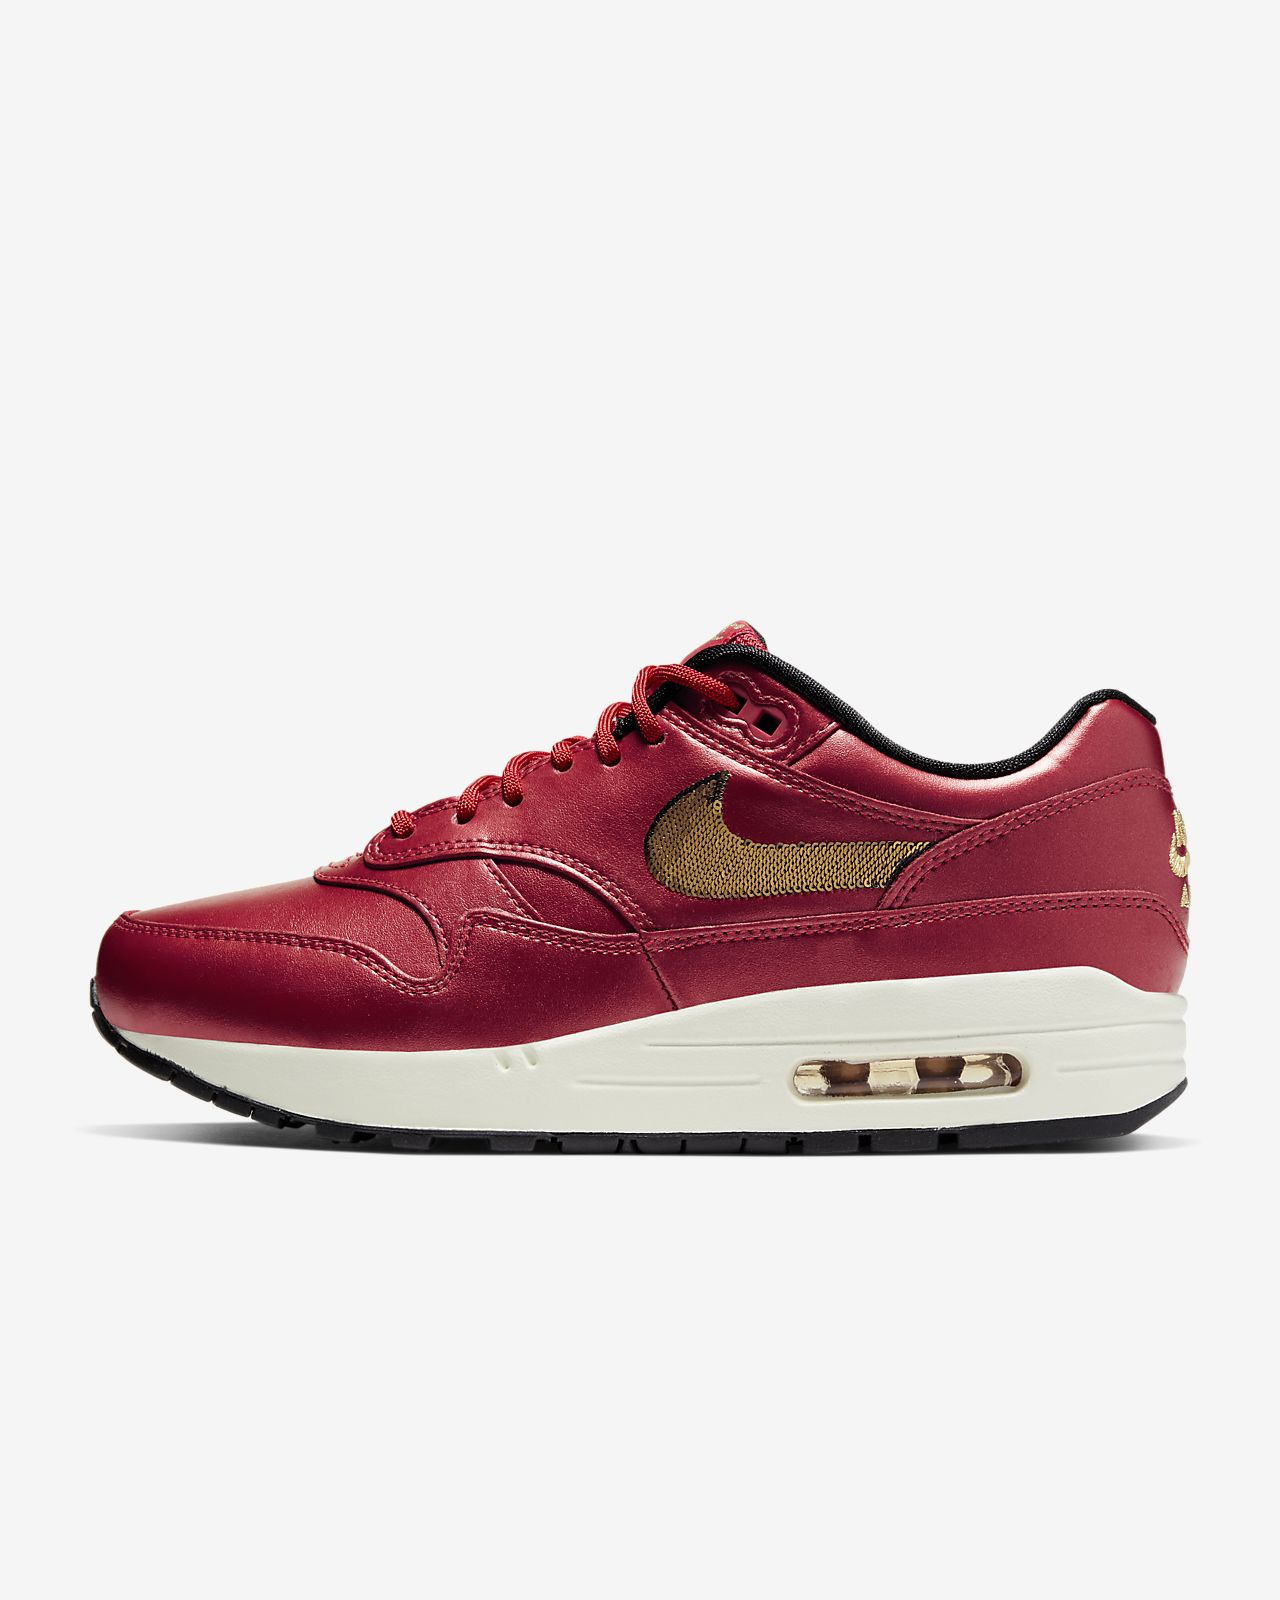 Sneaker Icons Nike Air Max 1